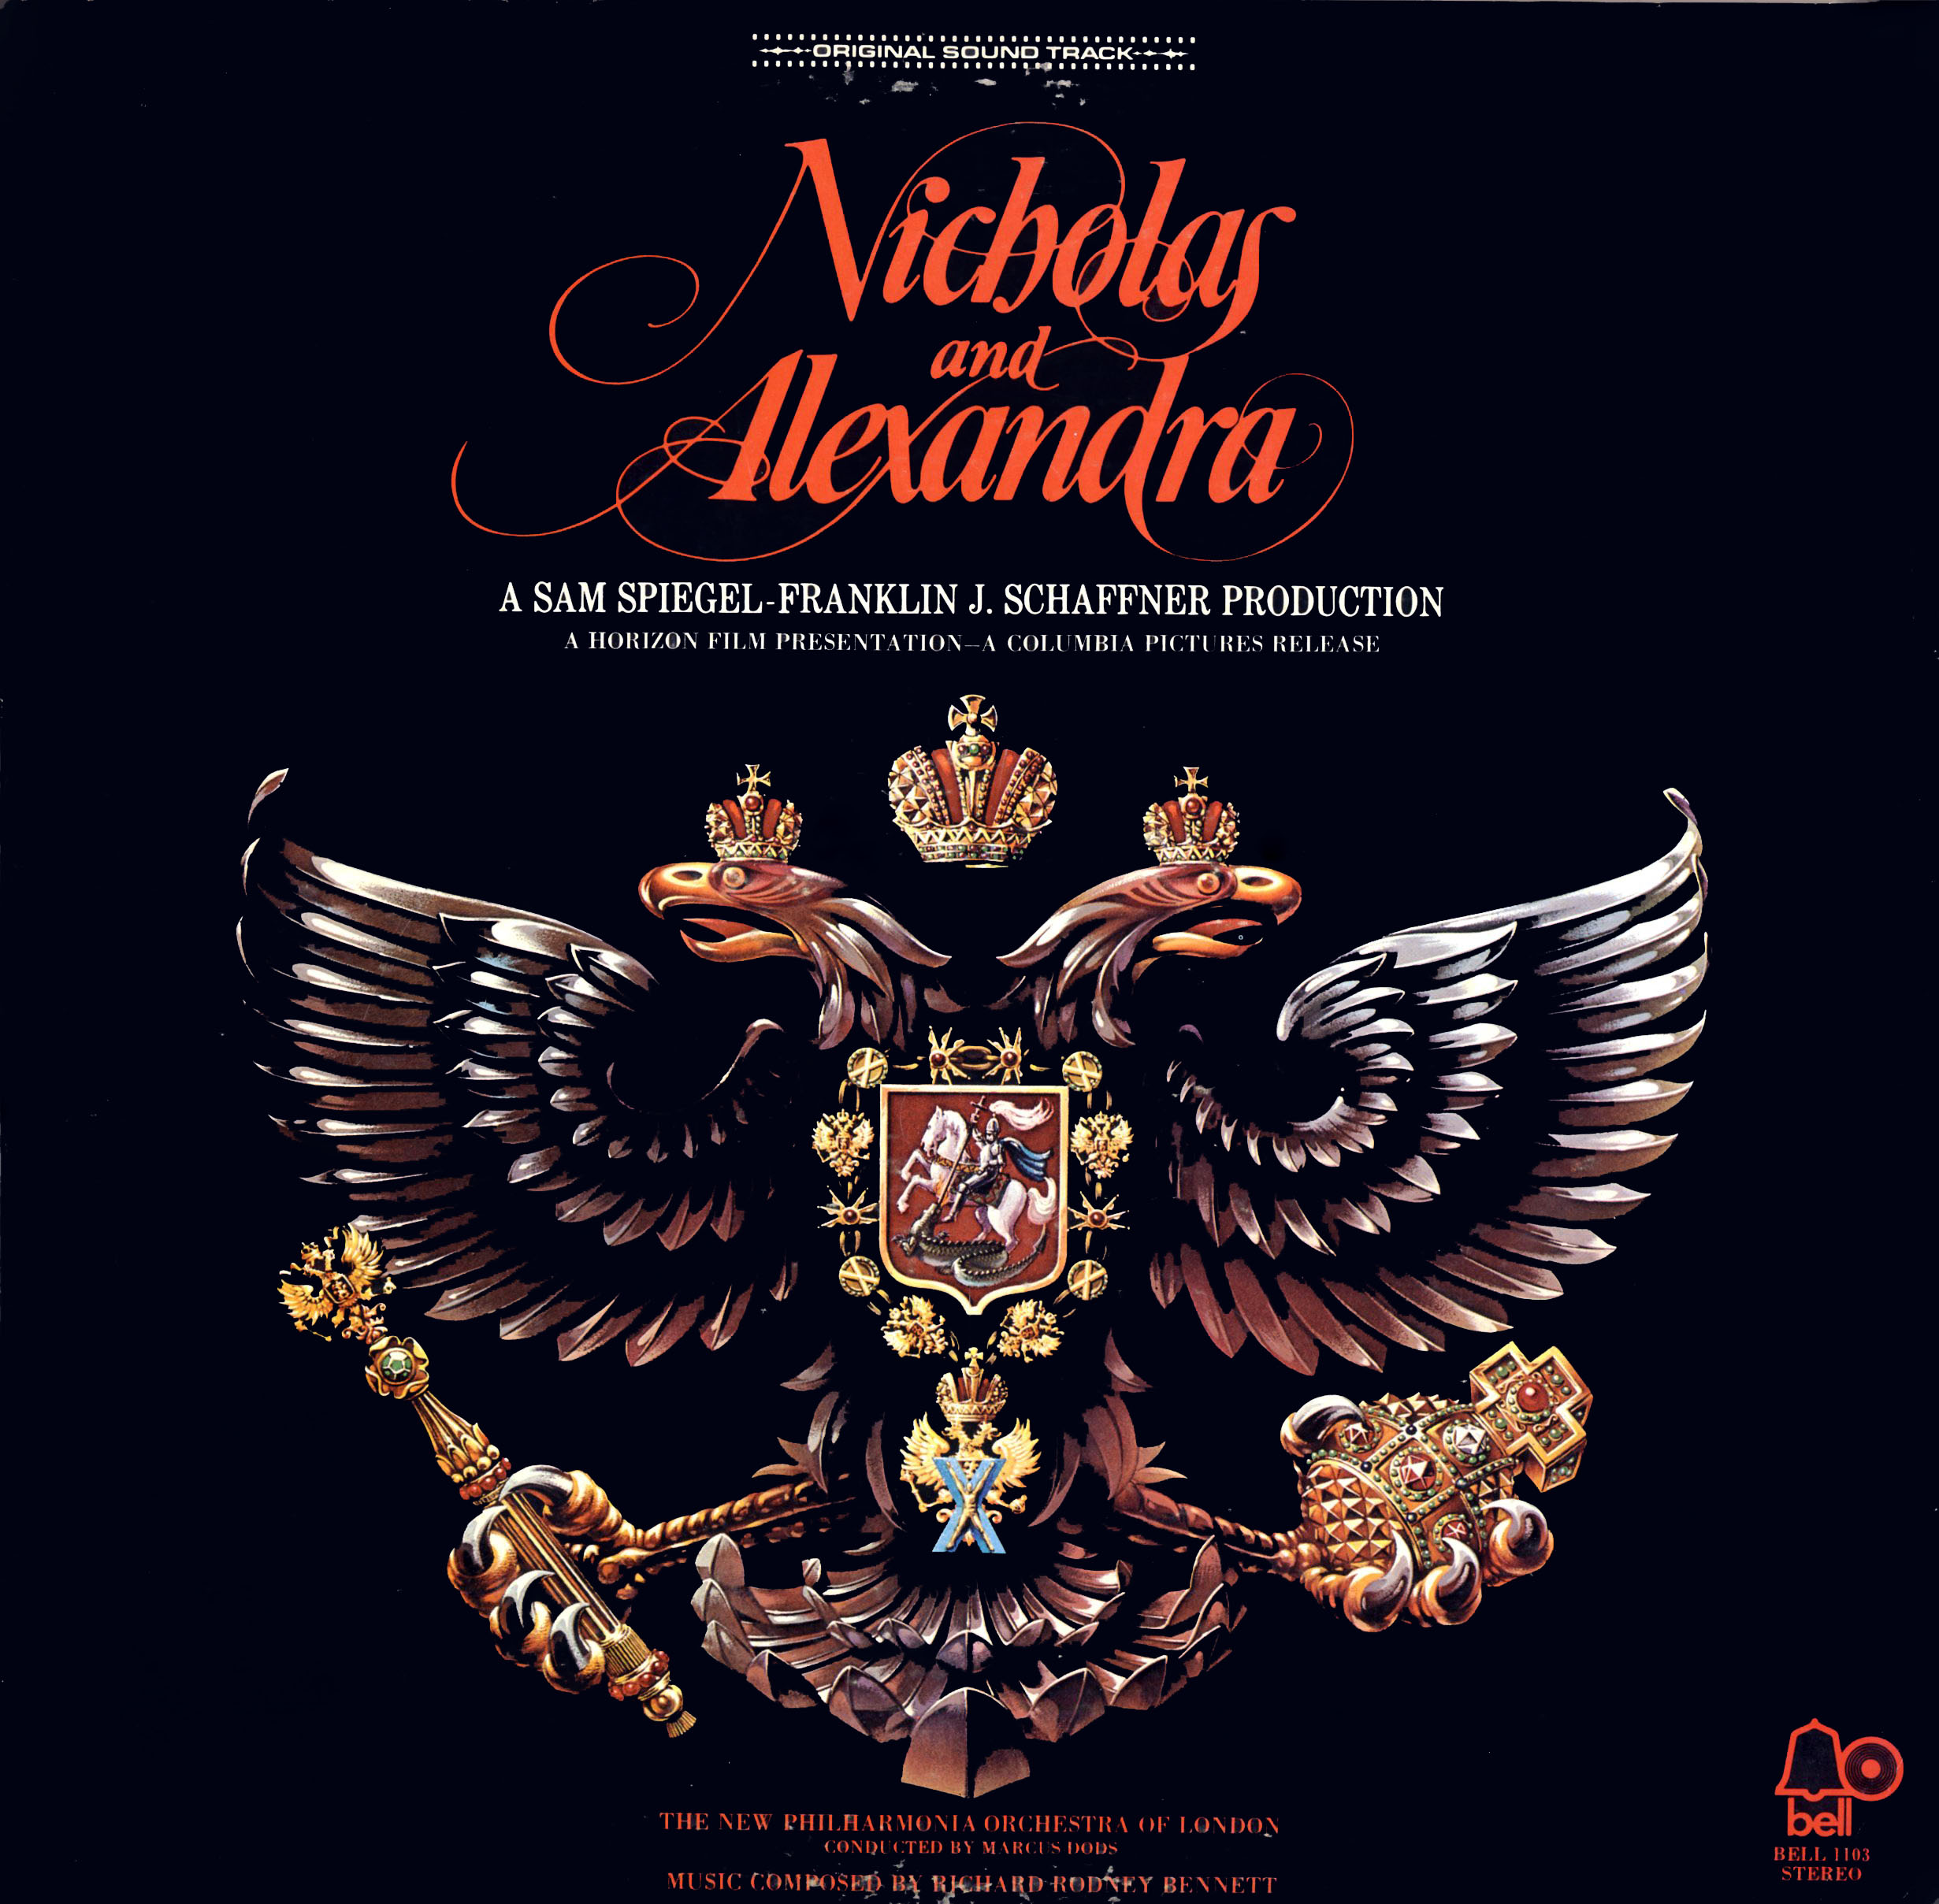 1103 - Nicholas and Alexandra on CD